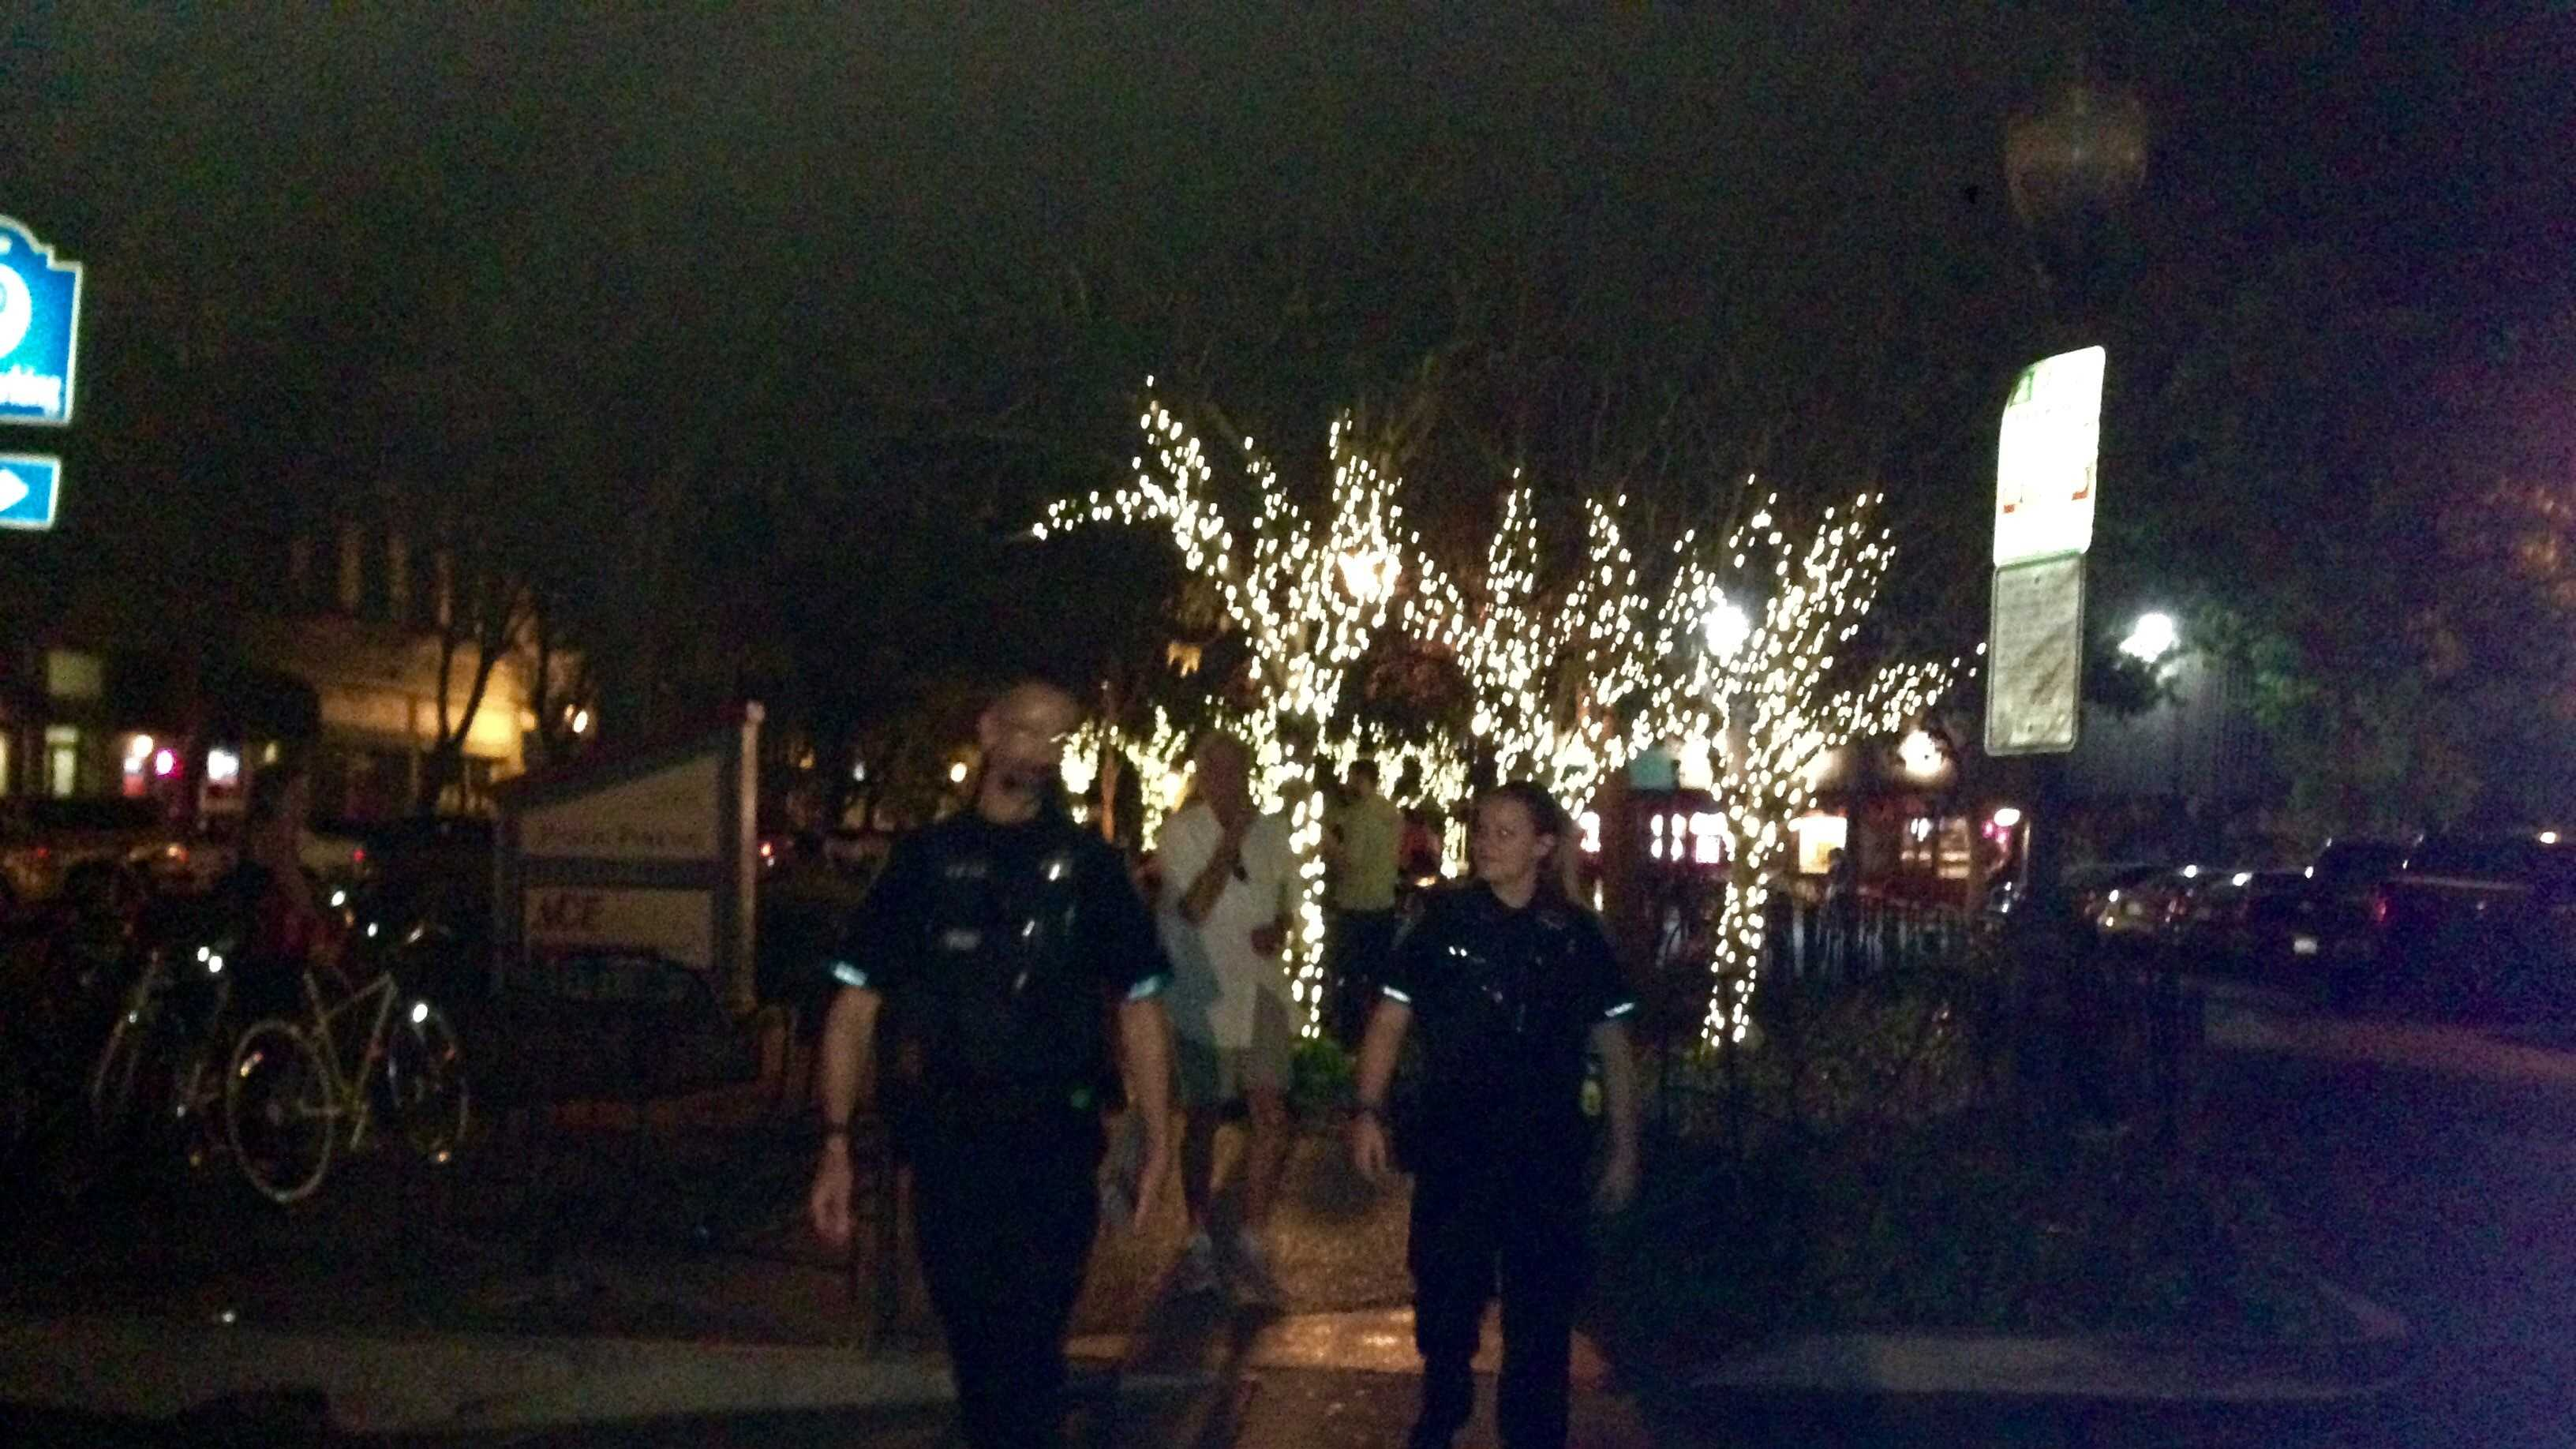 Two Davis police walk downtown on Friday, Oct. 2, 2015 in hopes to limit violence.